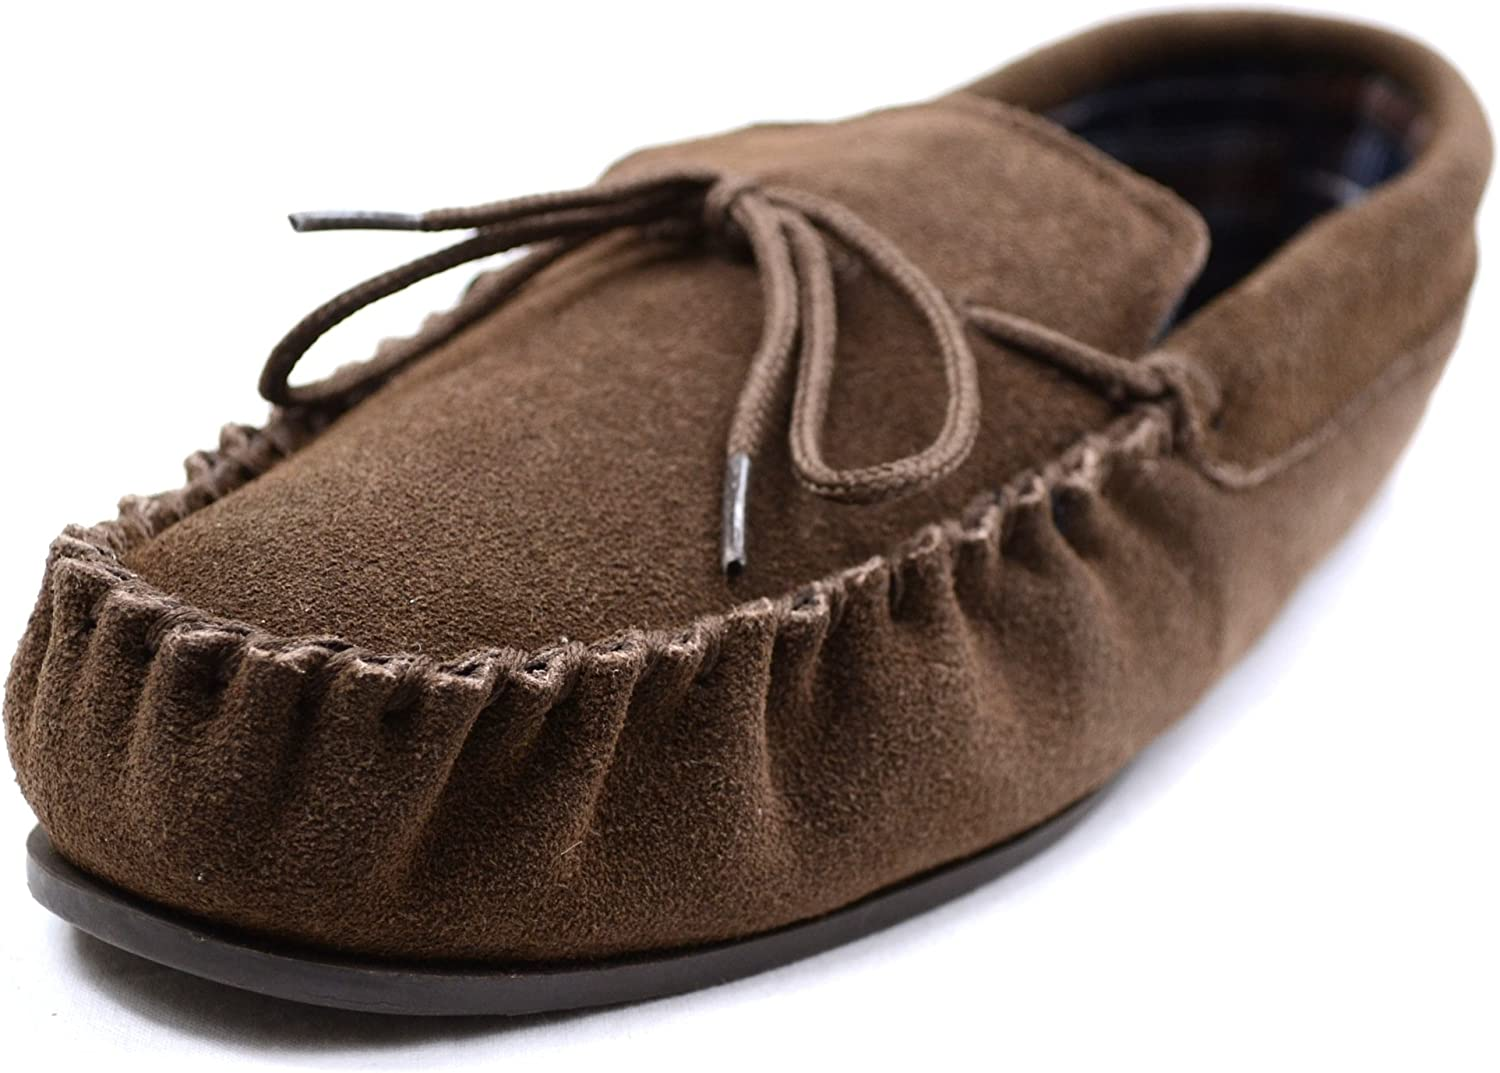 SNUGRUGS Mens Cotton Lined Suede Moccasin Slipper with Rubber Sole